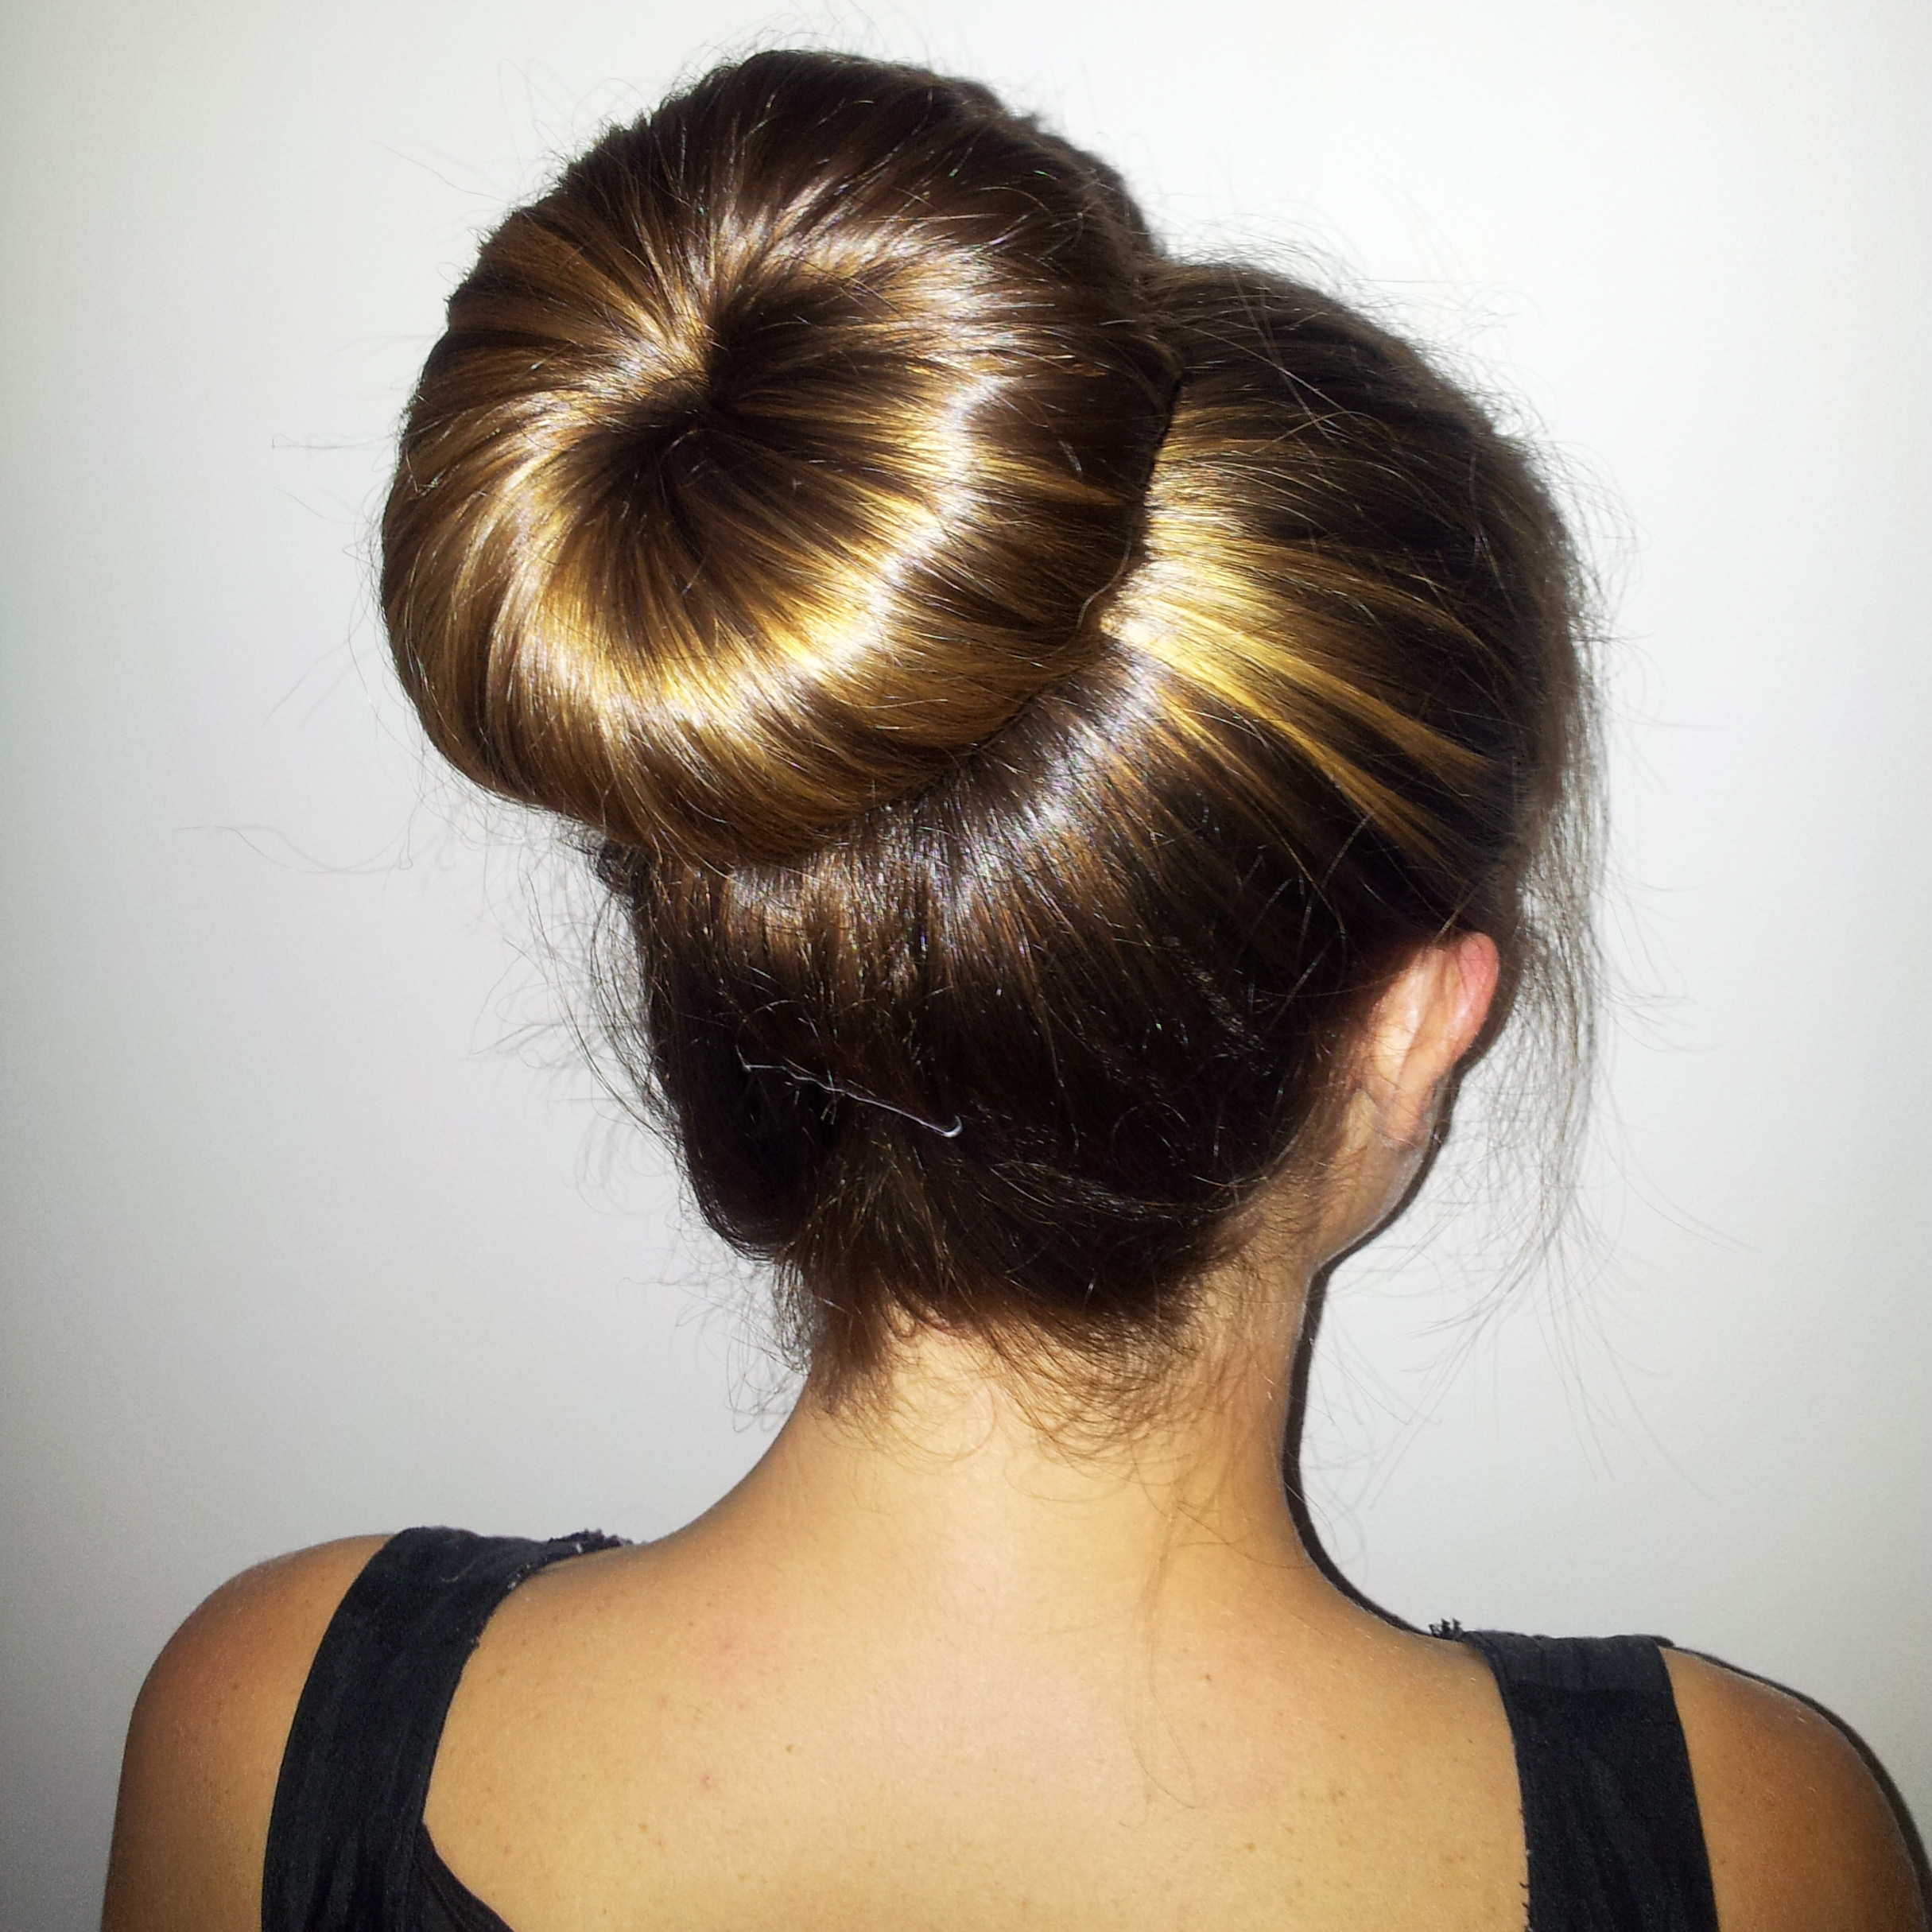 Wrap and twist your hair around the ring to create a bun shape. Spread your hair down and around the ring, until you've covered the entire doughnut with hair.